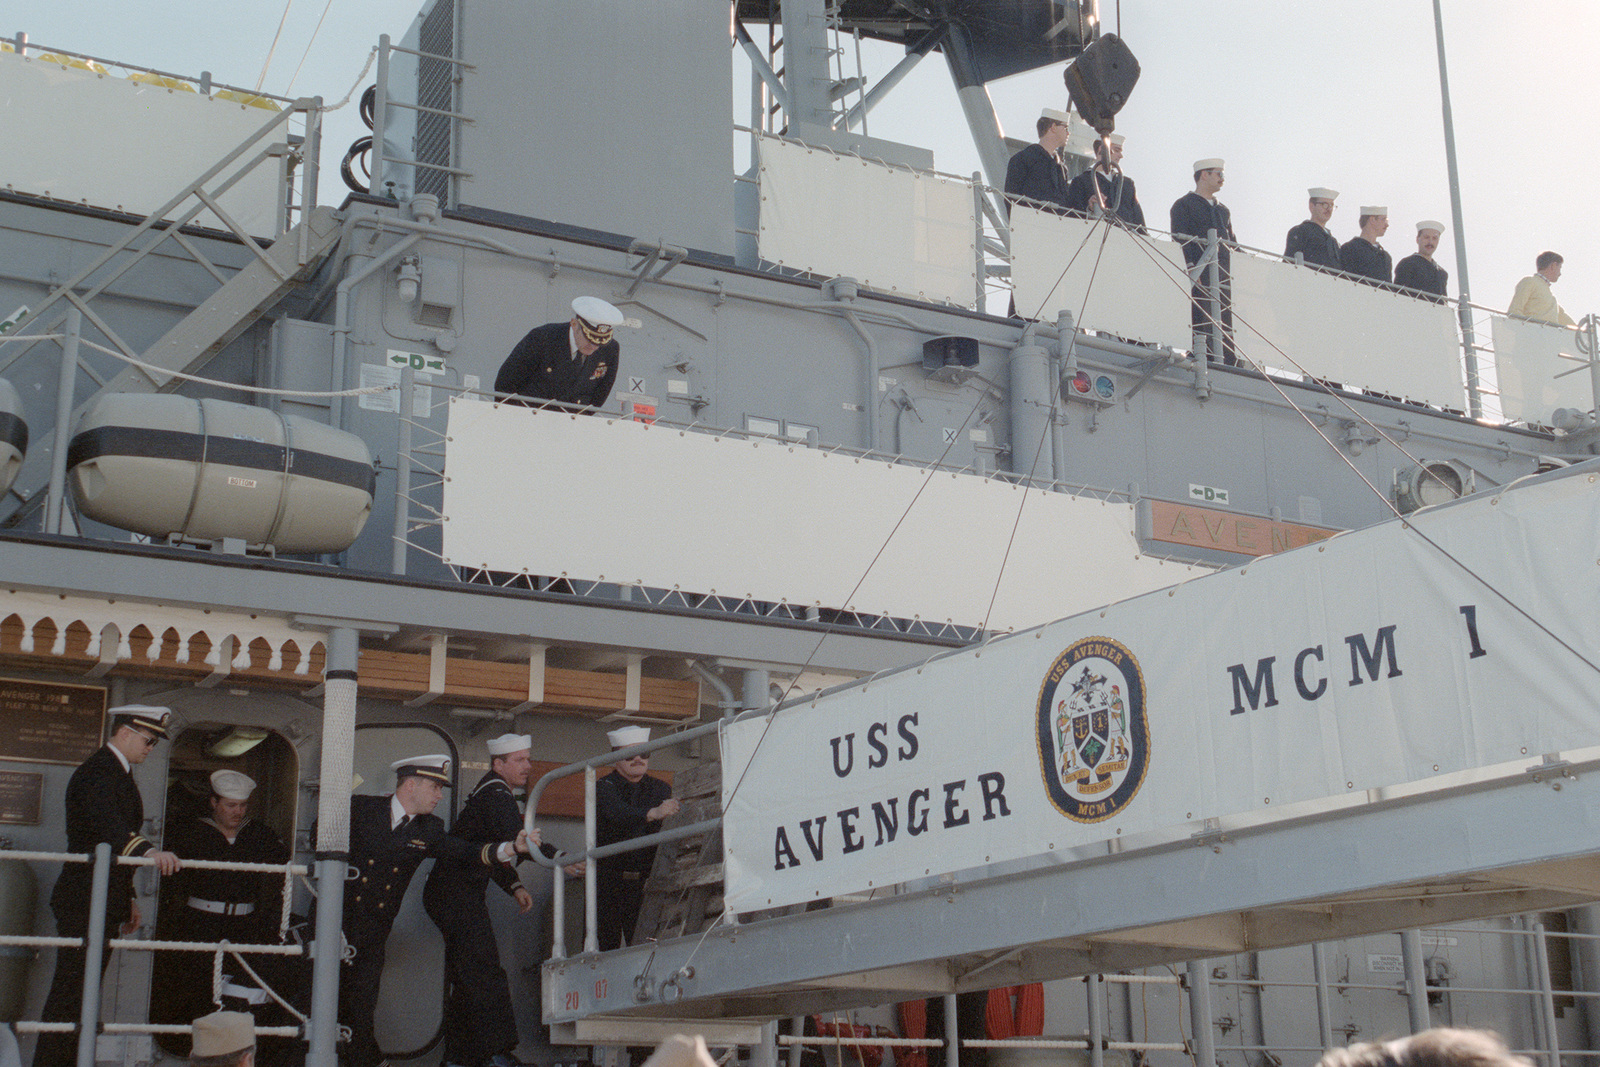 Crew members secure the gangplank for family members to board the mine countermeasures ship USS AVENGER (MCM 1) as the vessel arrives in home port at Naval Base, Charleston.  The AVENGER, assigned to Mine Squadron 2, is the first of eight ships currently being built by the Navy to replace the older open ocean minesweepers (MSOs) constructed in the 1950s